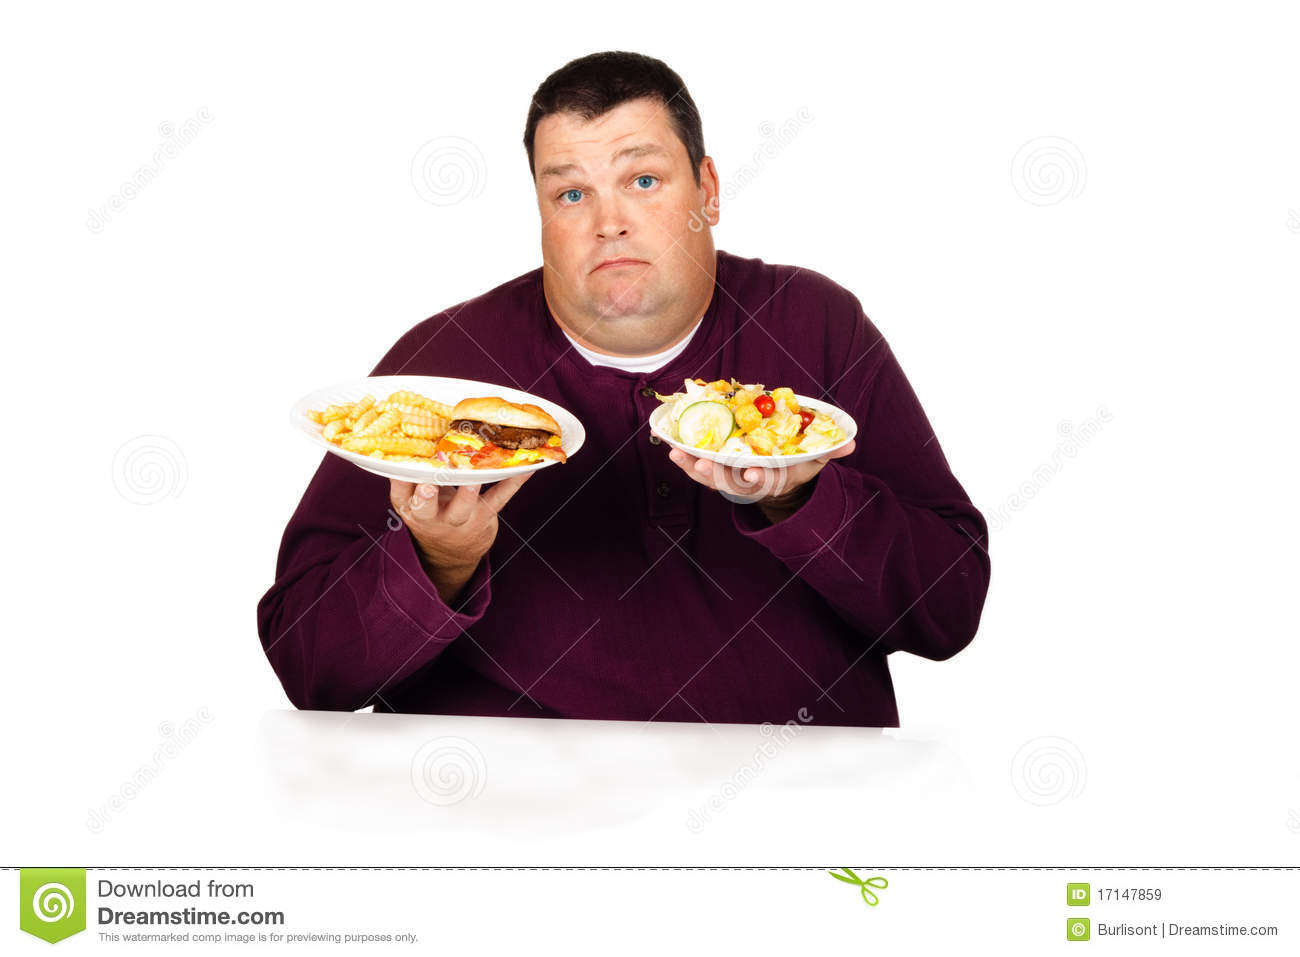 Dieting Thinking About Food